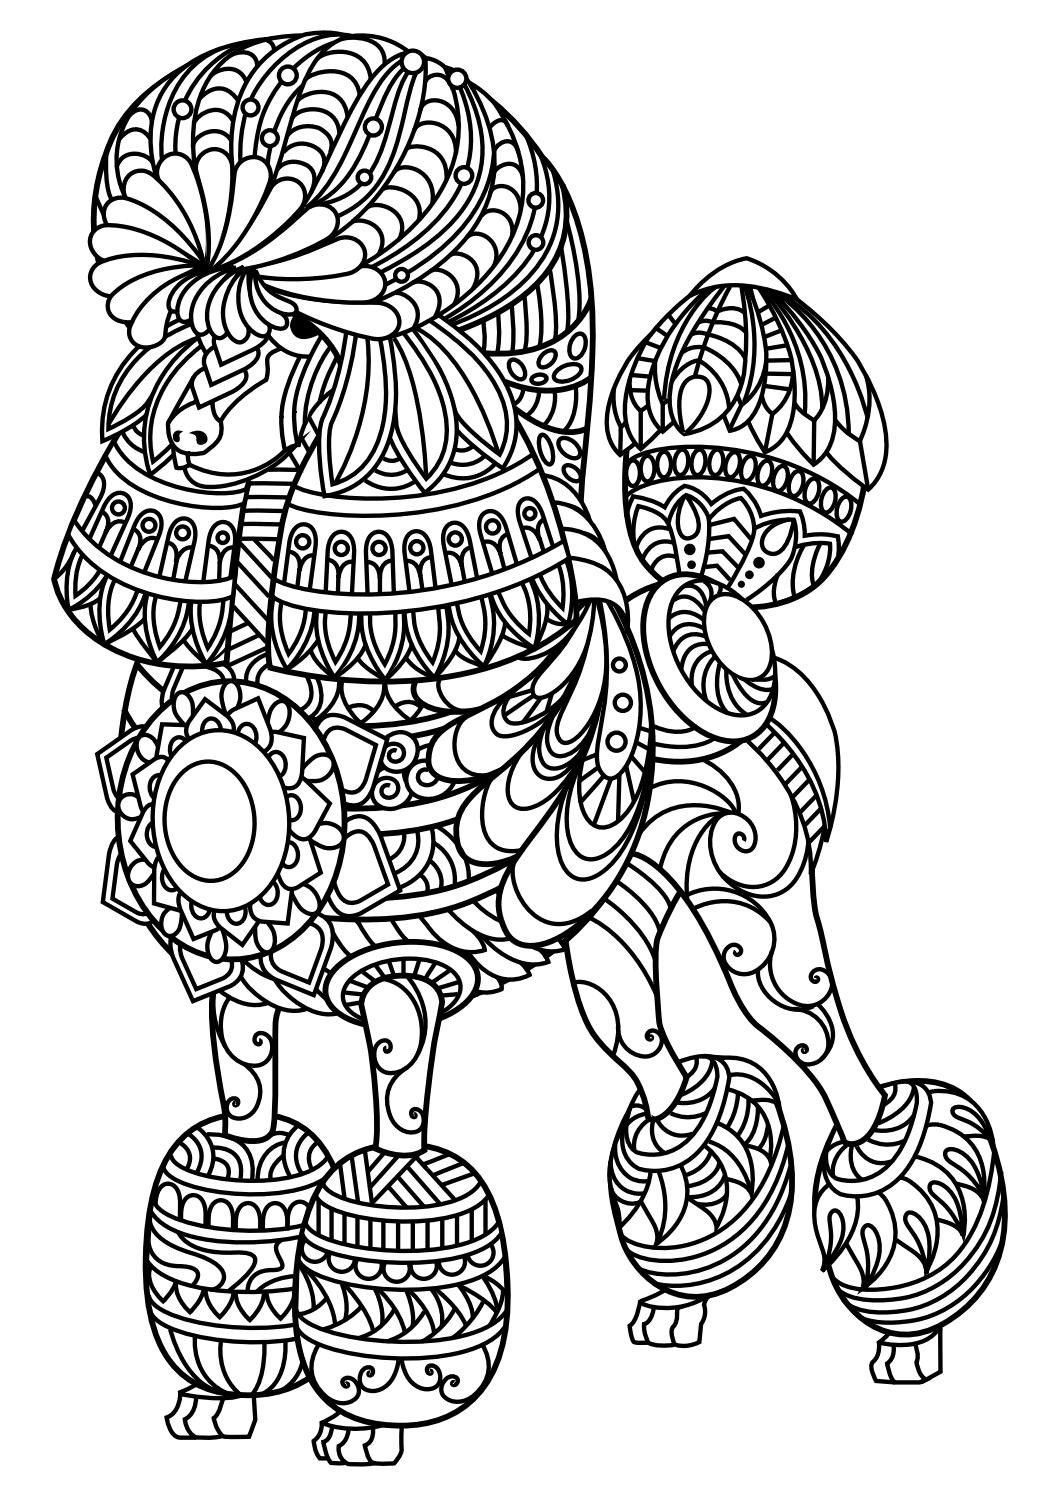 750 Coloring Pages Farm Animals Pdf  Images